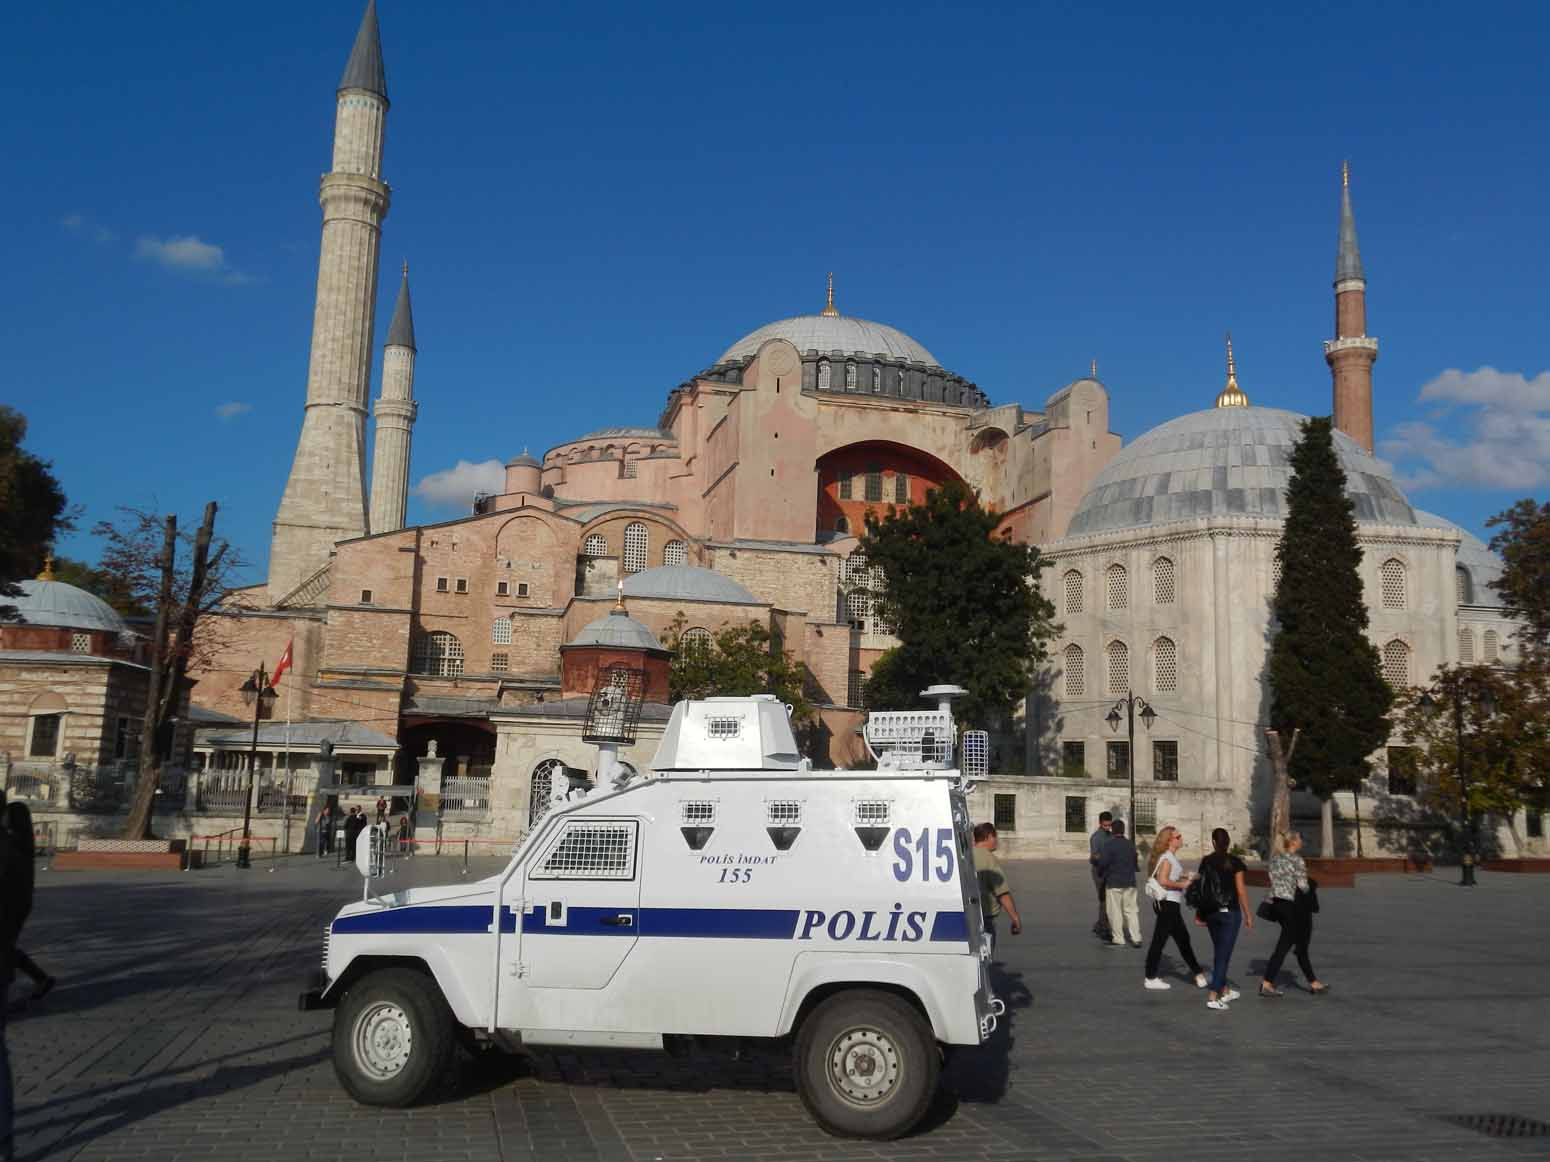 The wondrous Hagia Sophia guarded by police